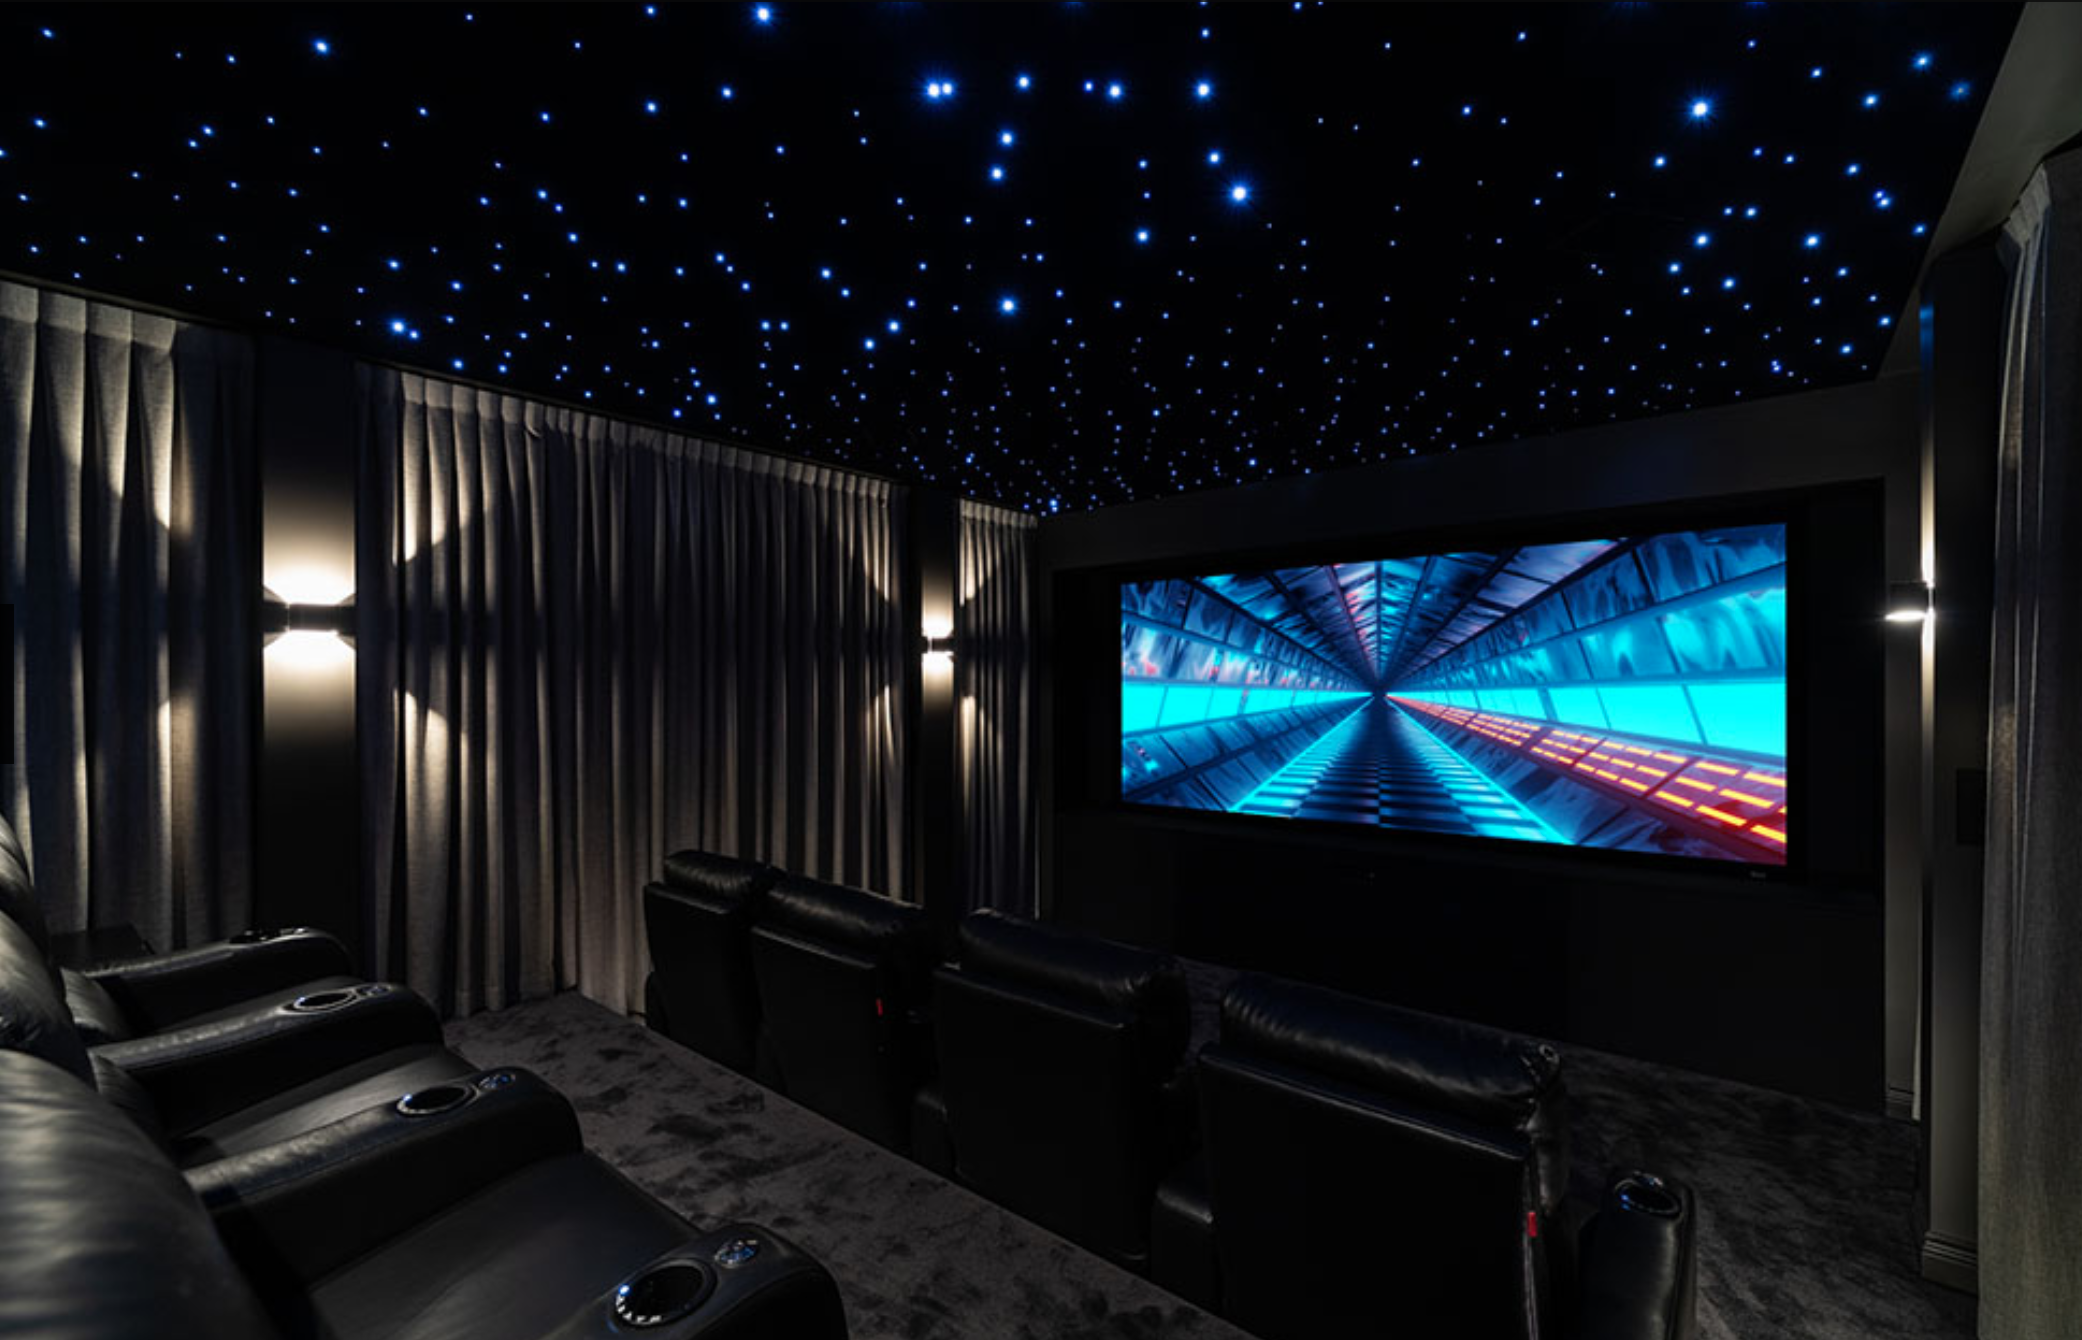 """Severtson Screen appeared in this home theater, """"Electric Dreams,"""" which won CEDIA's Best Home Cinema; Level II; Asia Pacific (by The Digital Picture)"""